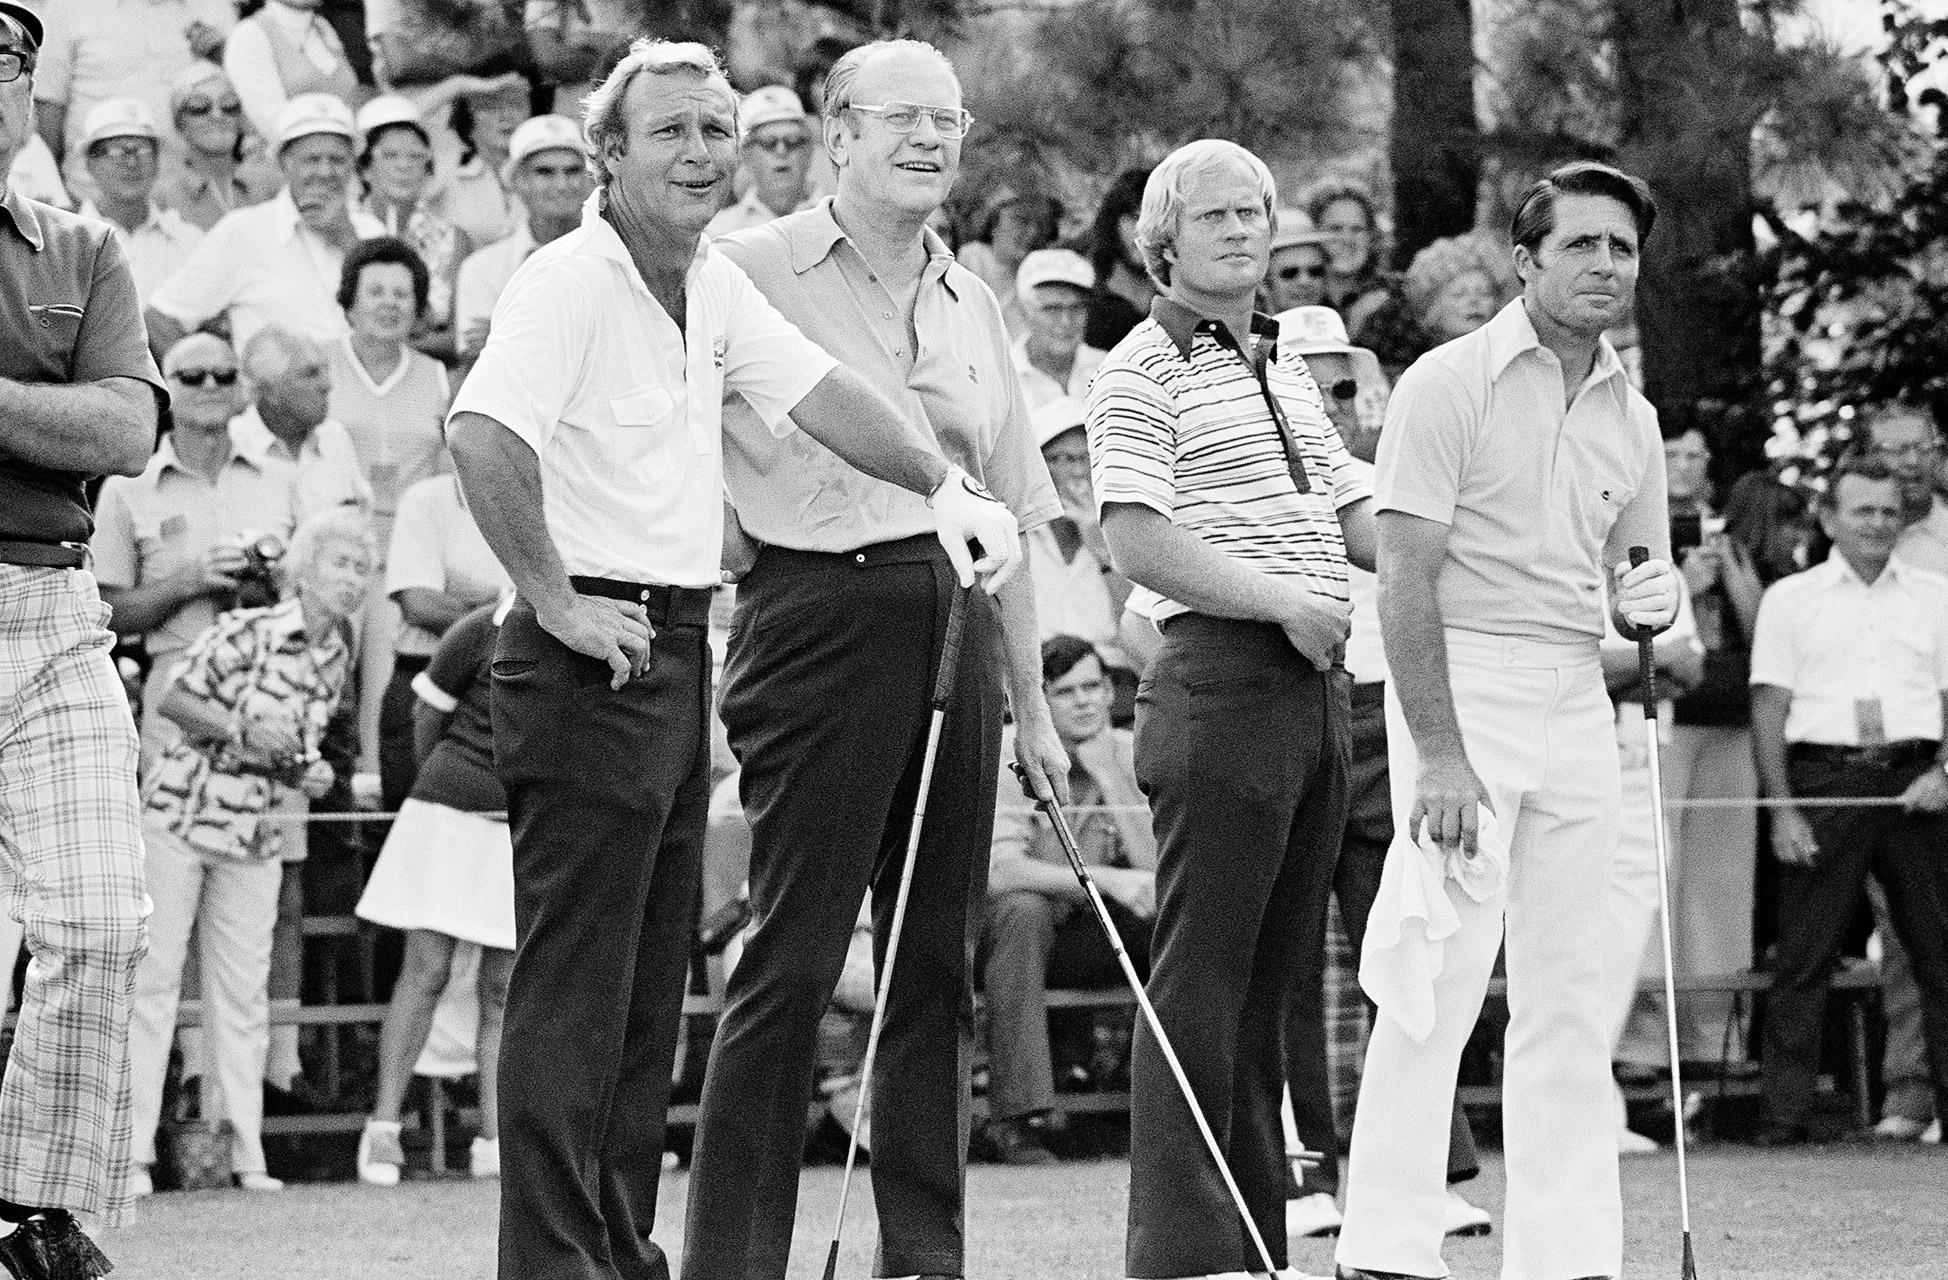 Ford, Palmer, Nicklaus, Player 1974